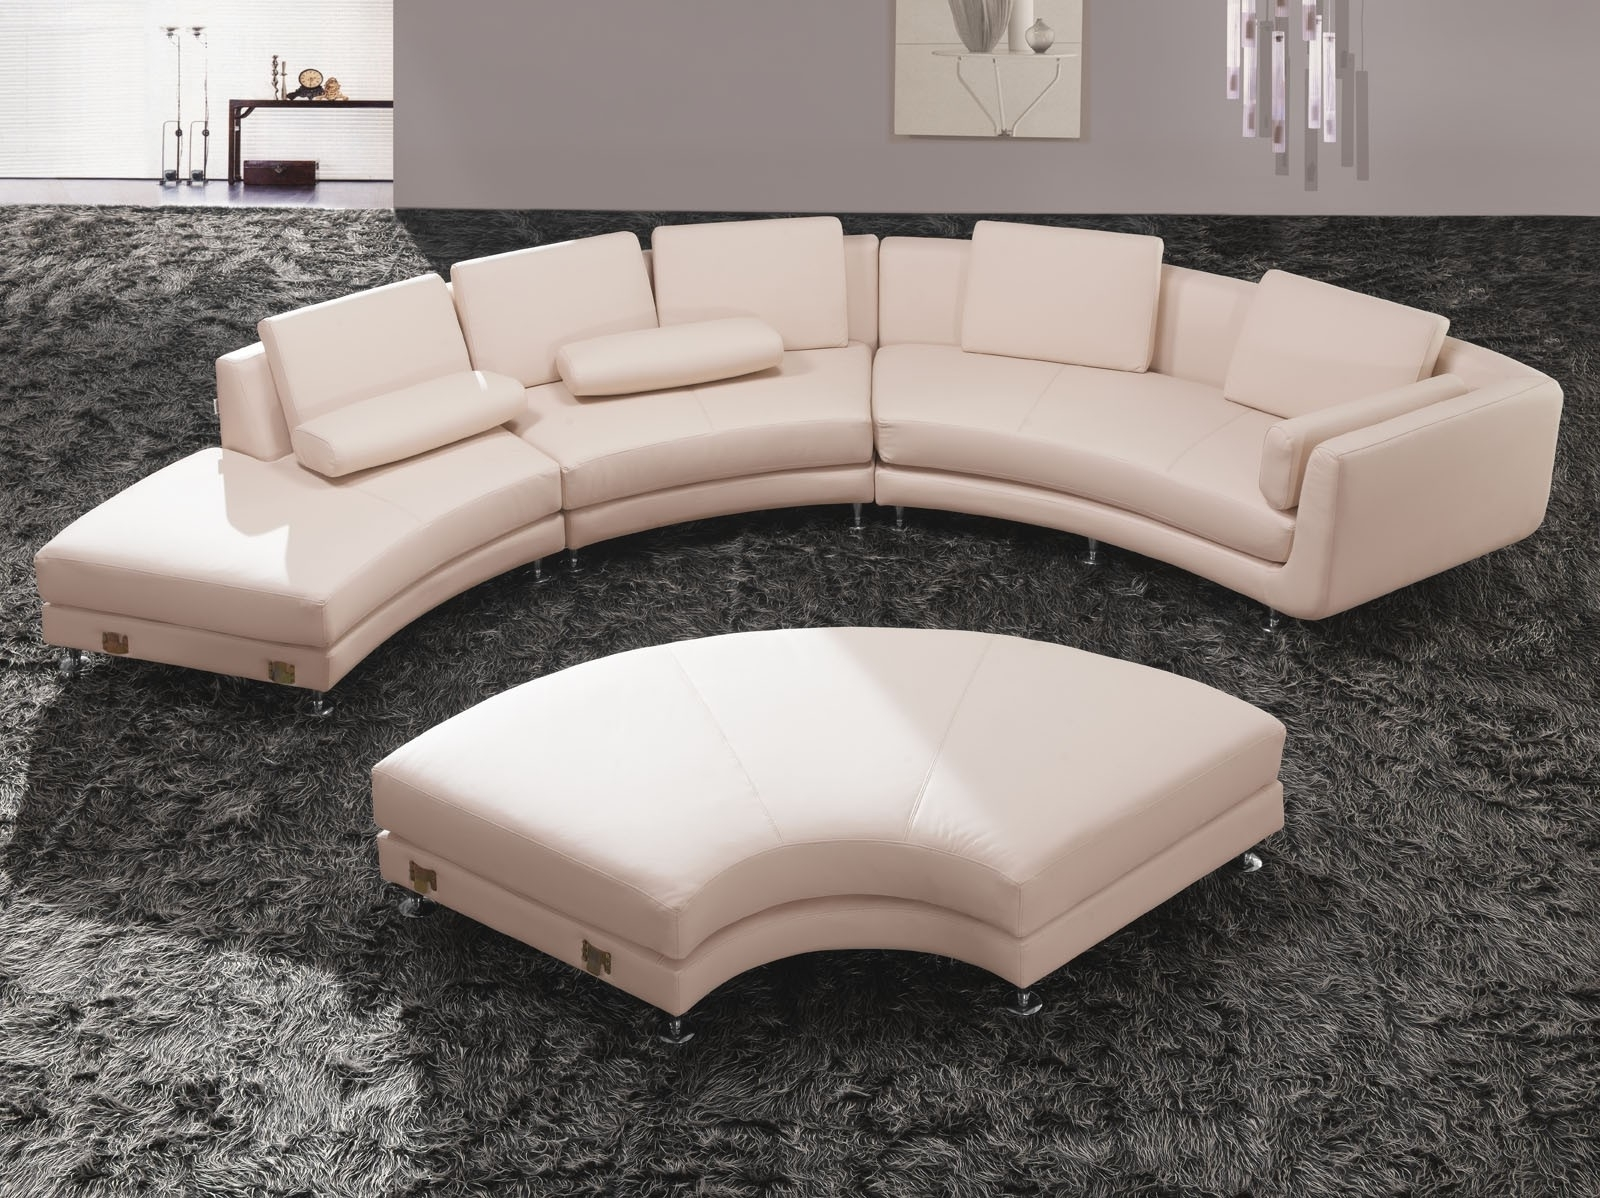 Sofa : Glamorous Round Sectional Sofa Bed Curved Leather Tufted Inside Current Circular Sofa Chairs (View 15 of 20)